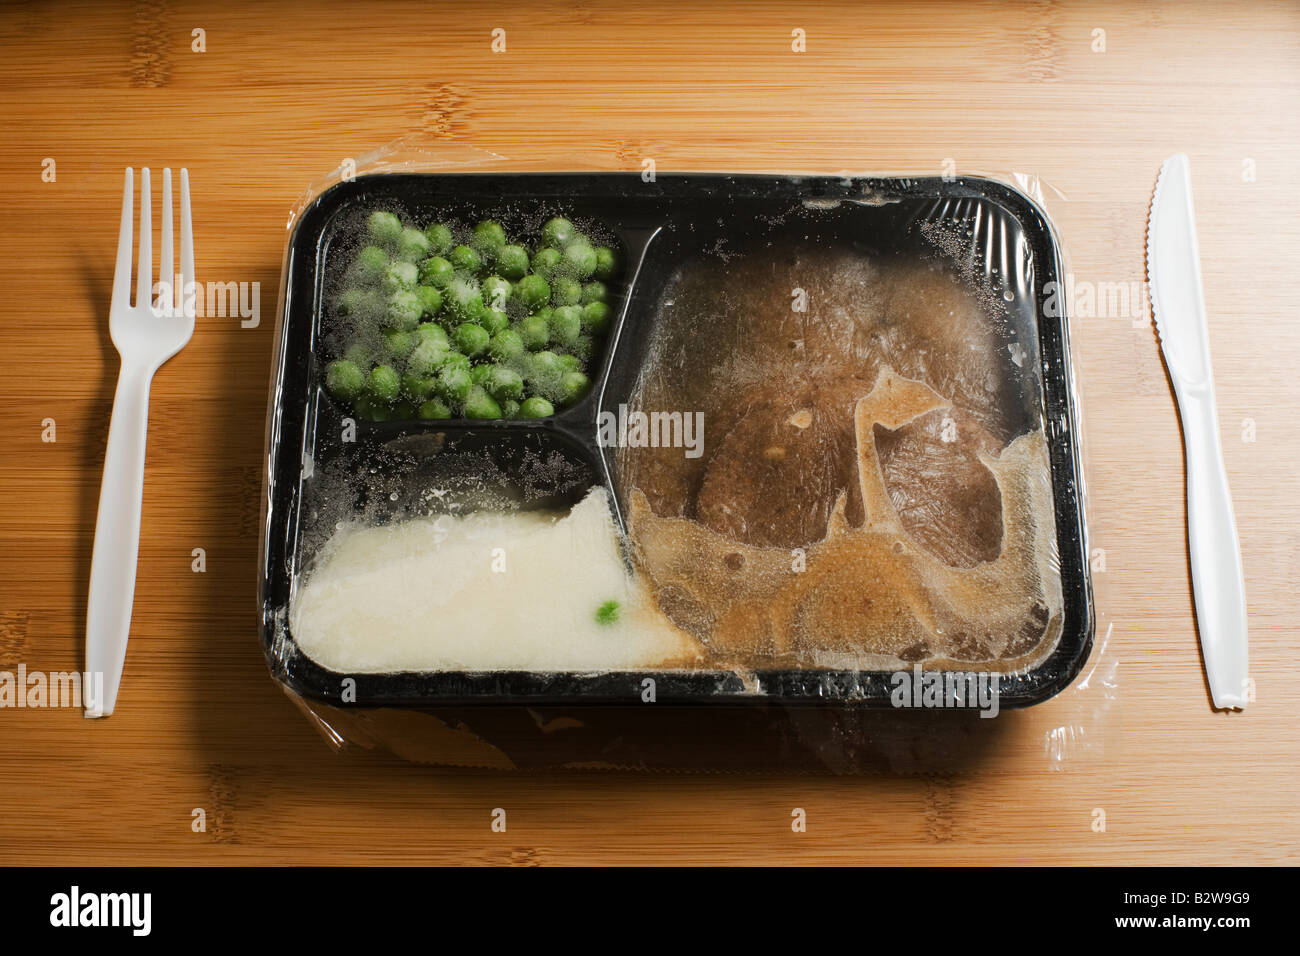 A tv dinner - Stock Image